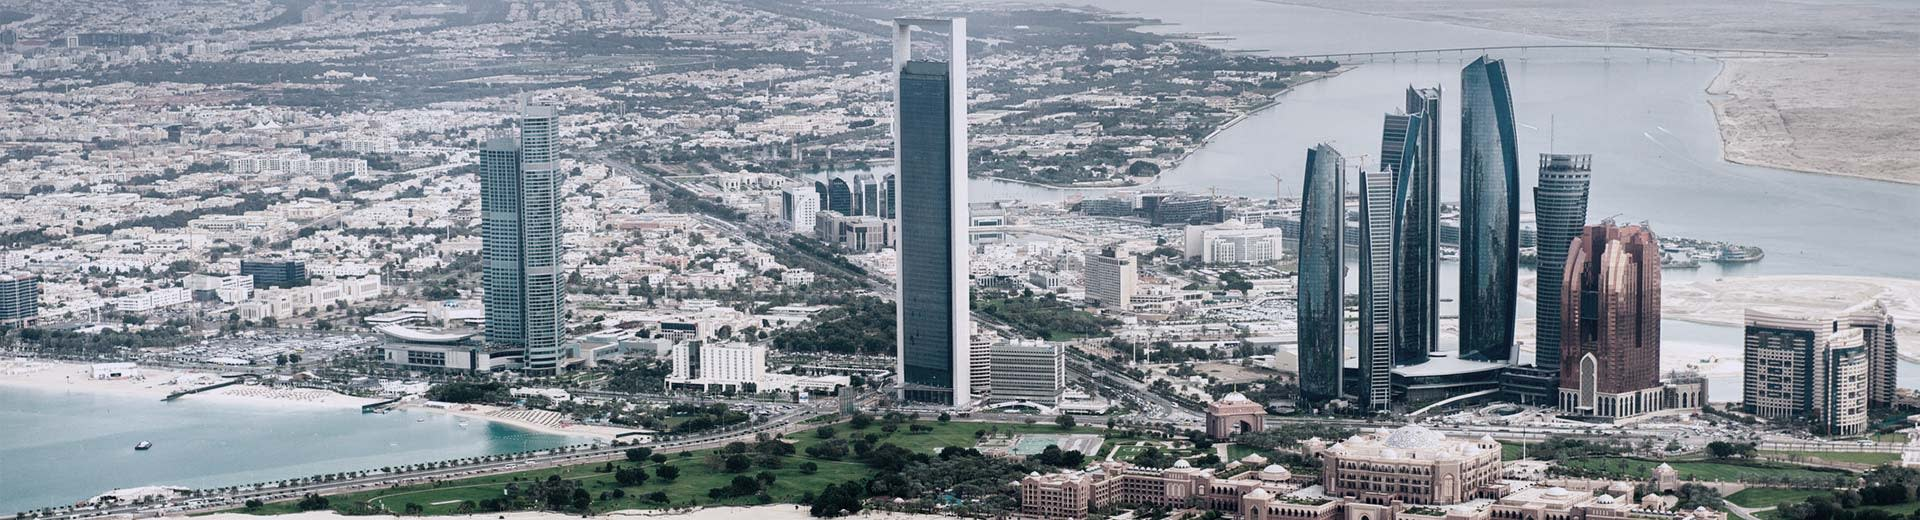 Panorama of Abu Dhabi's city center with a clear view of skyscrapers and desert in the background.